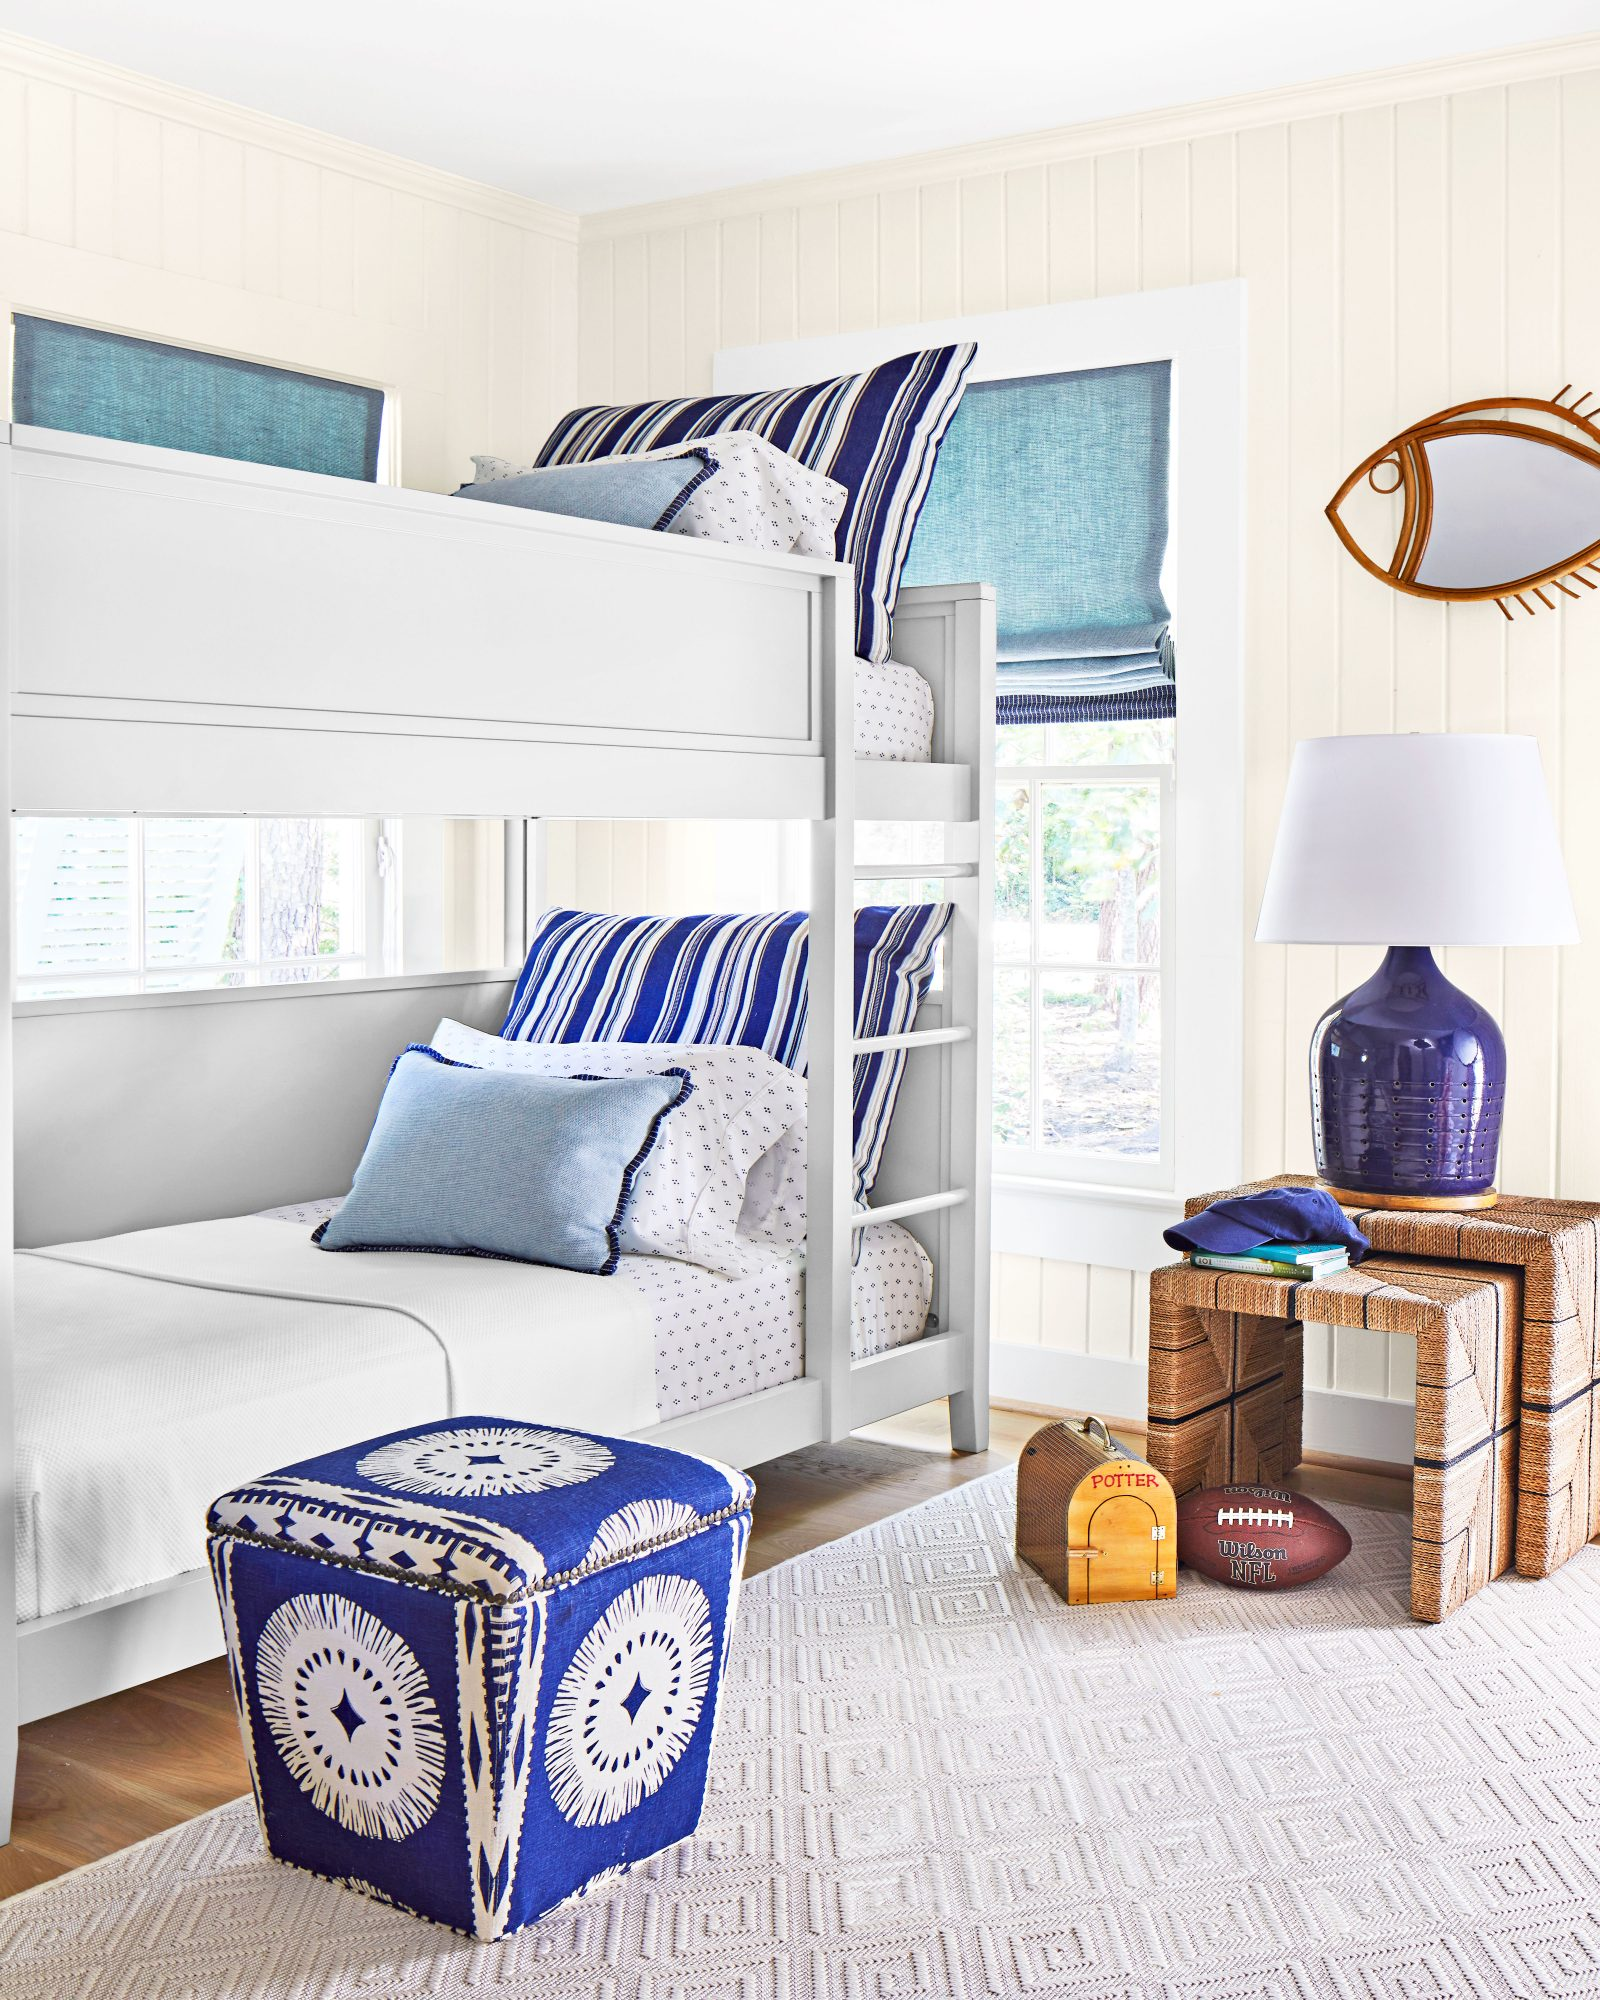 Coastal kids' bedroom with blue and white details